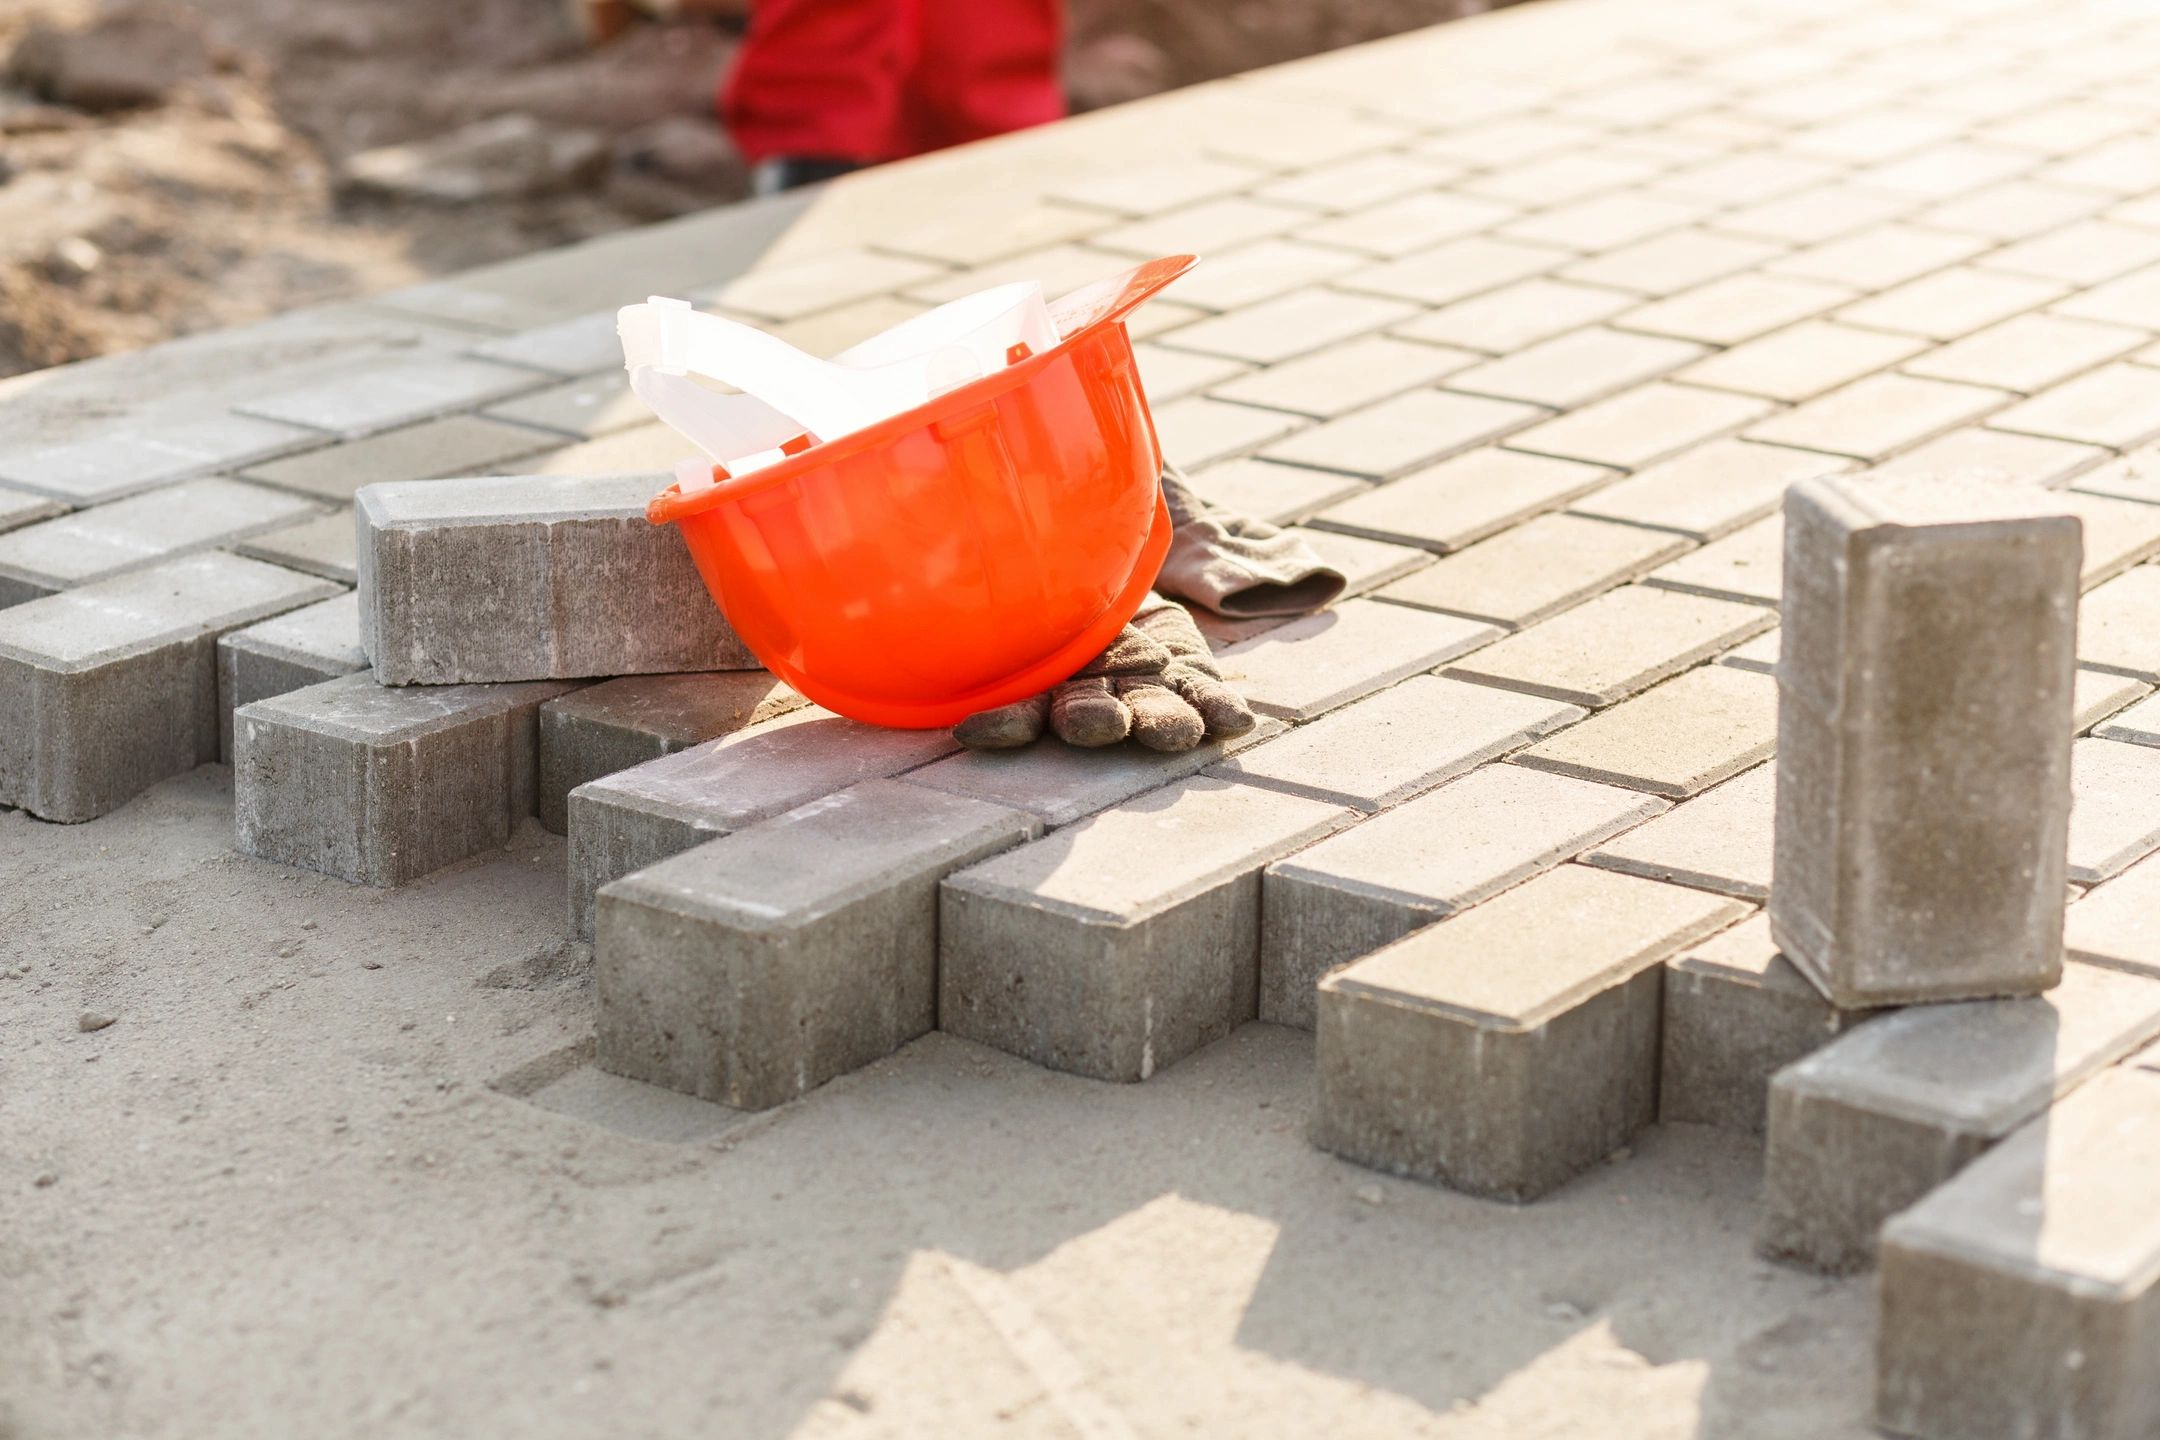 Northend Pavers are a well-known brick paving company operating from Mandurah to Perth.